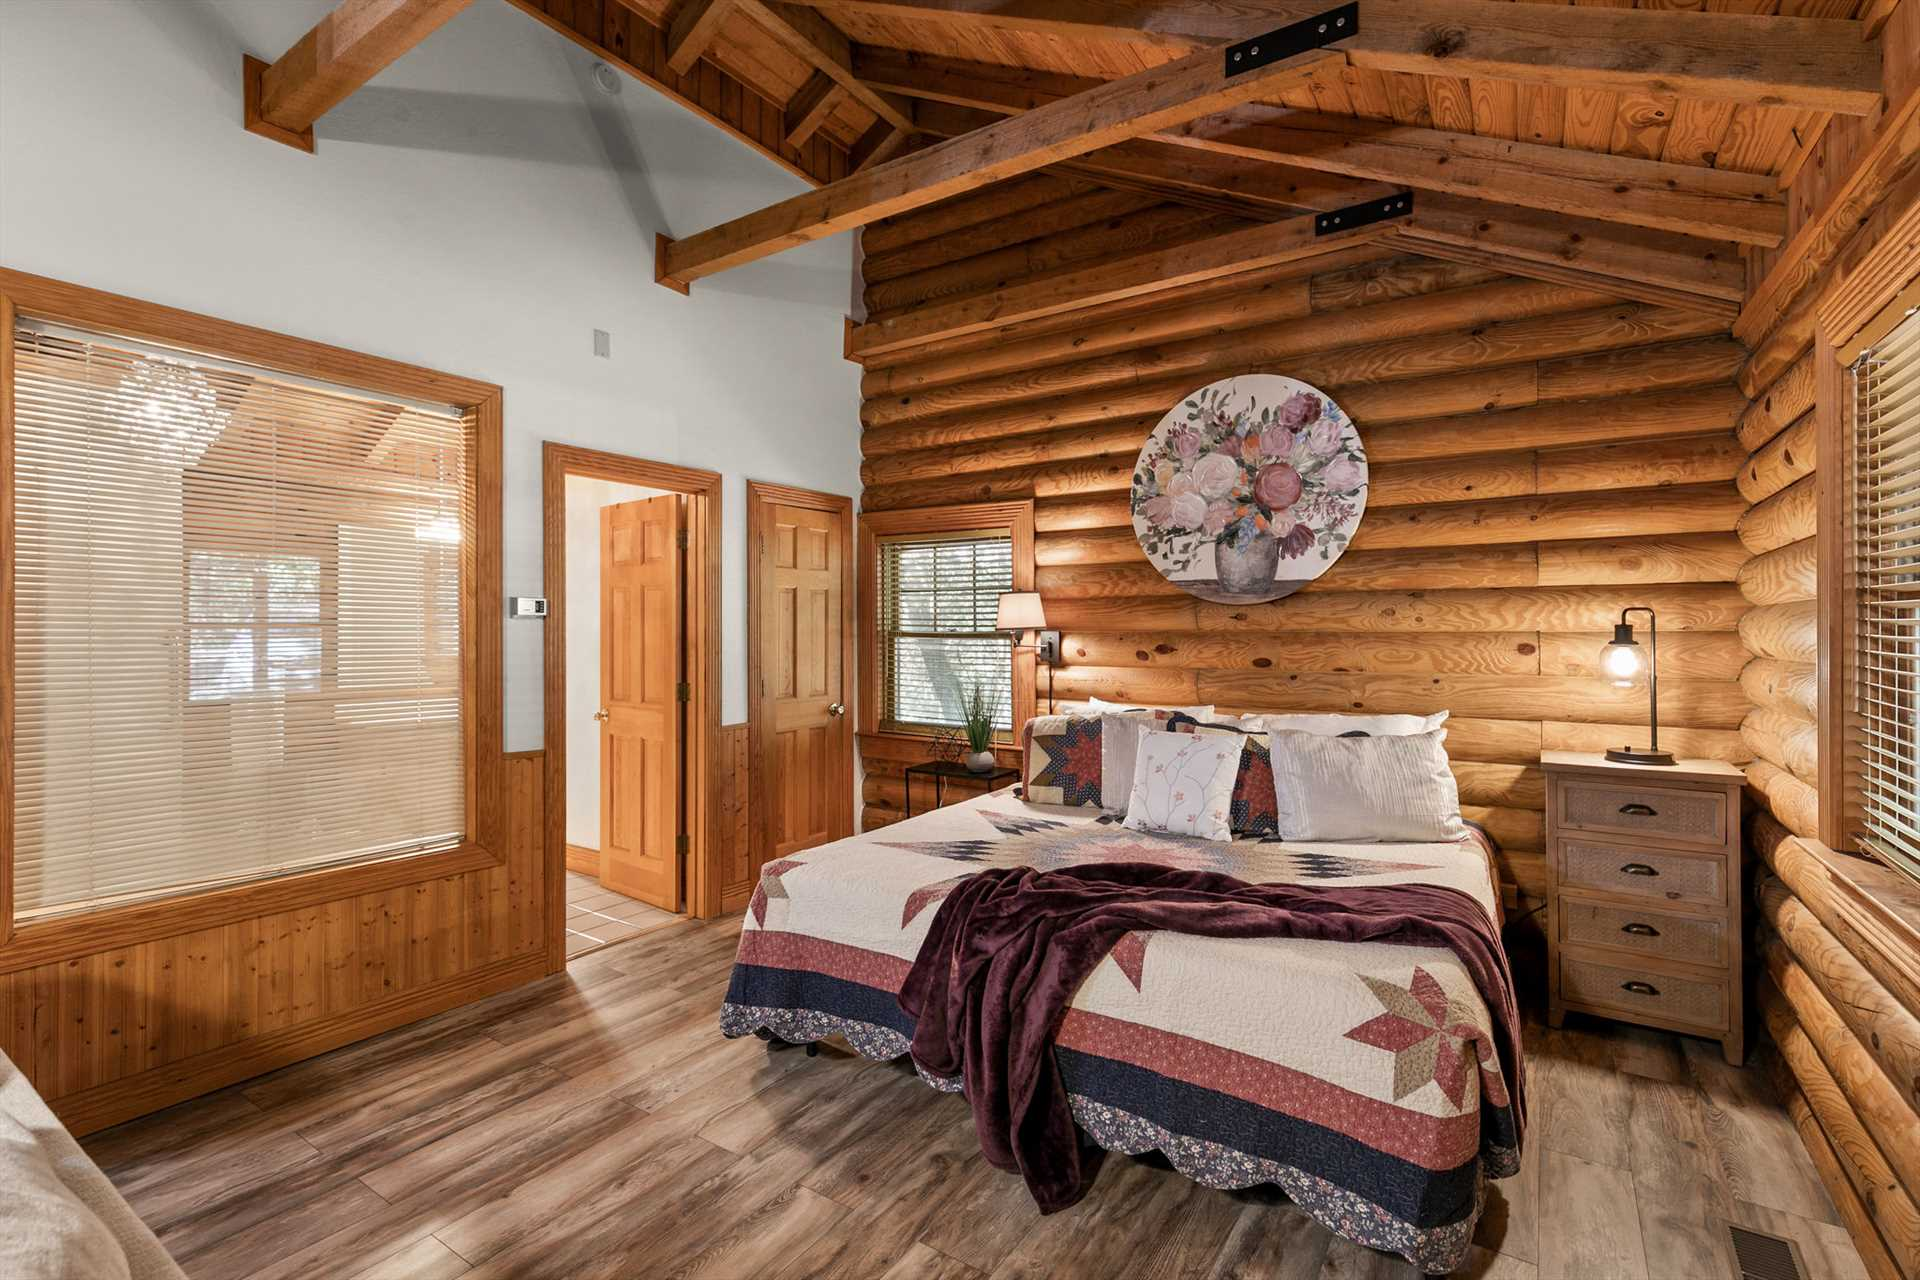 The cabin is full of natural light.